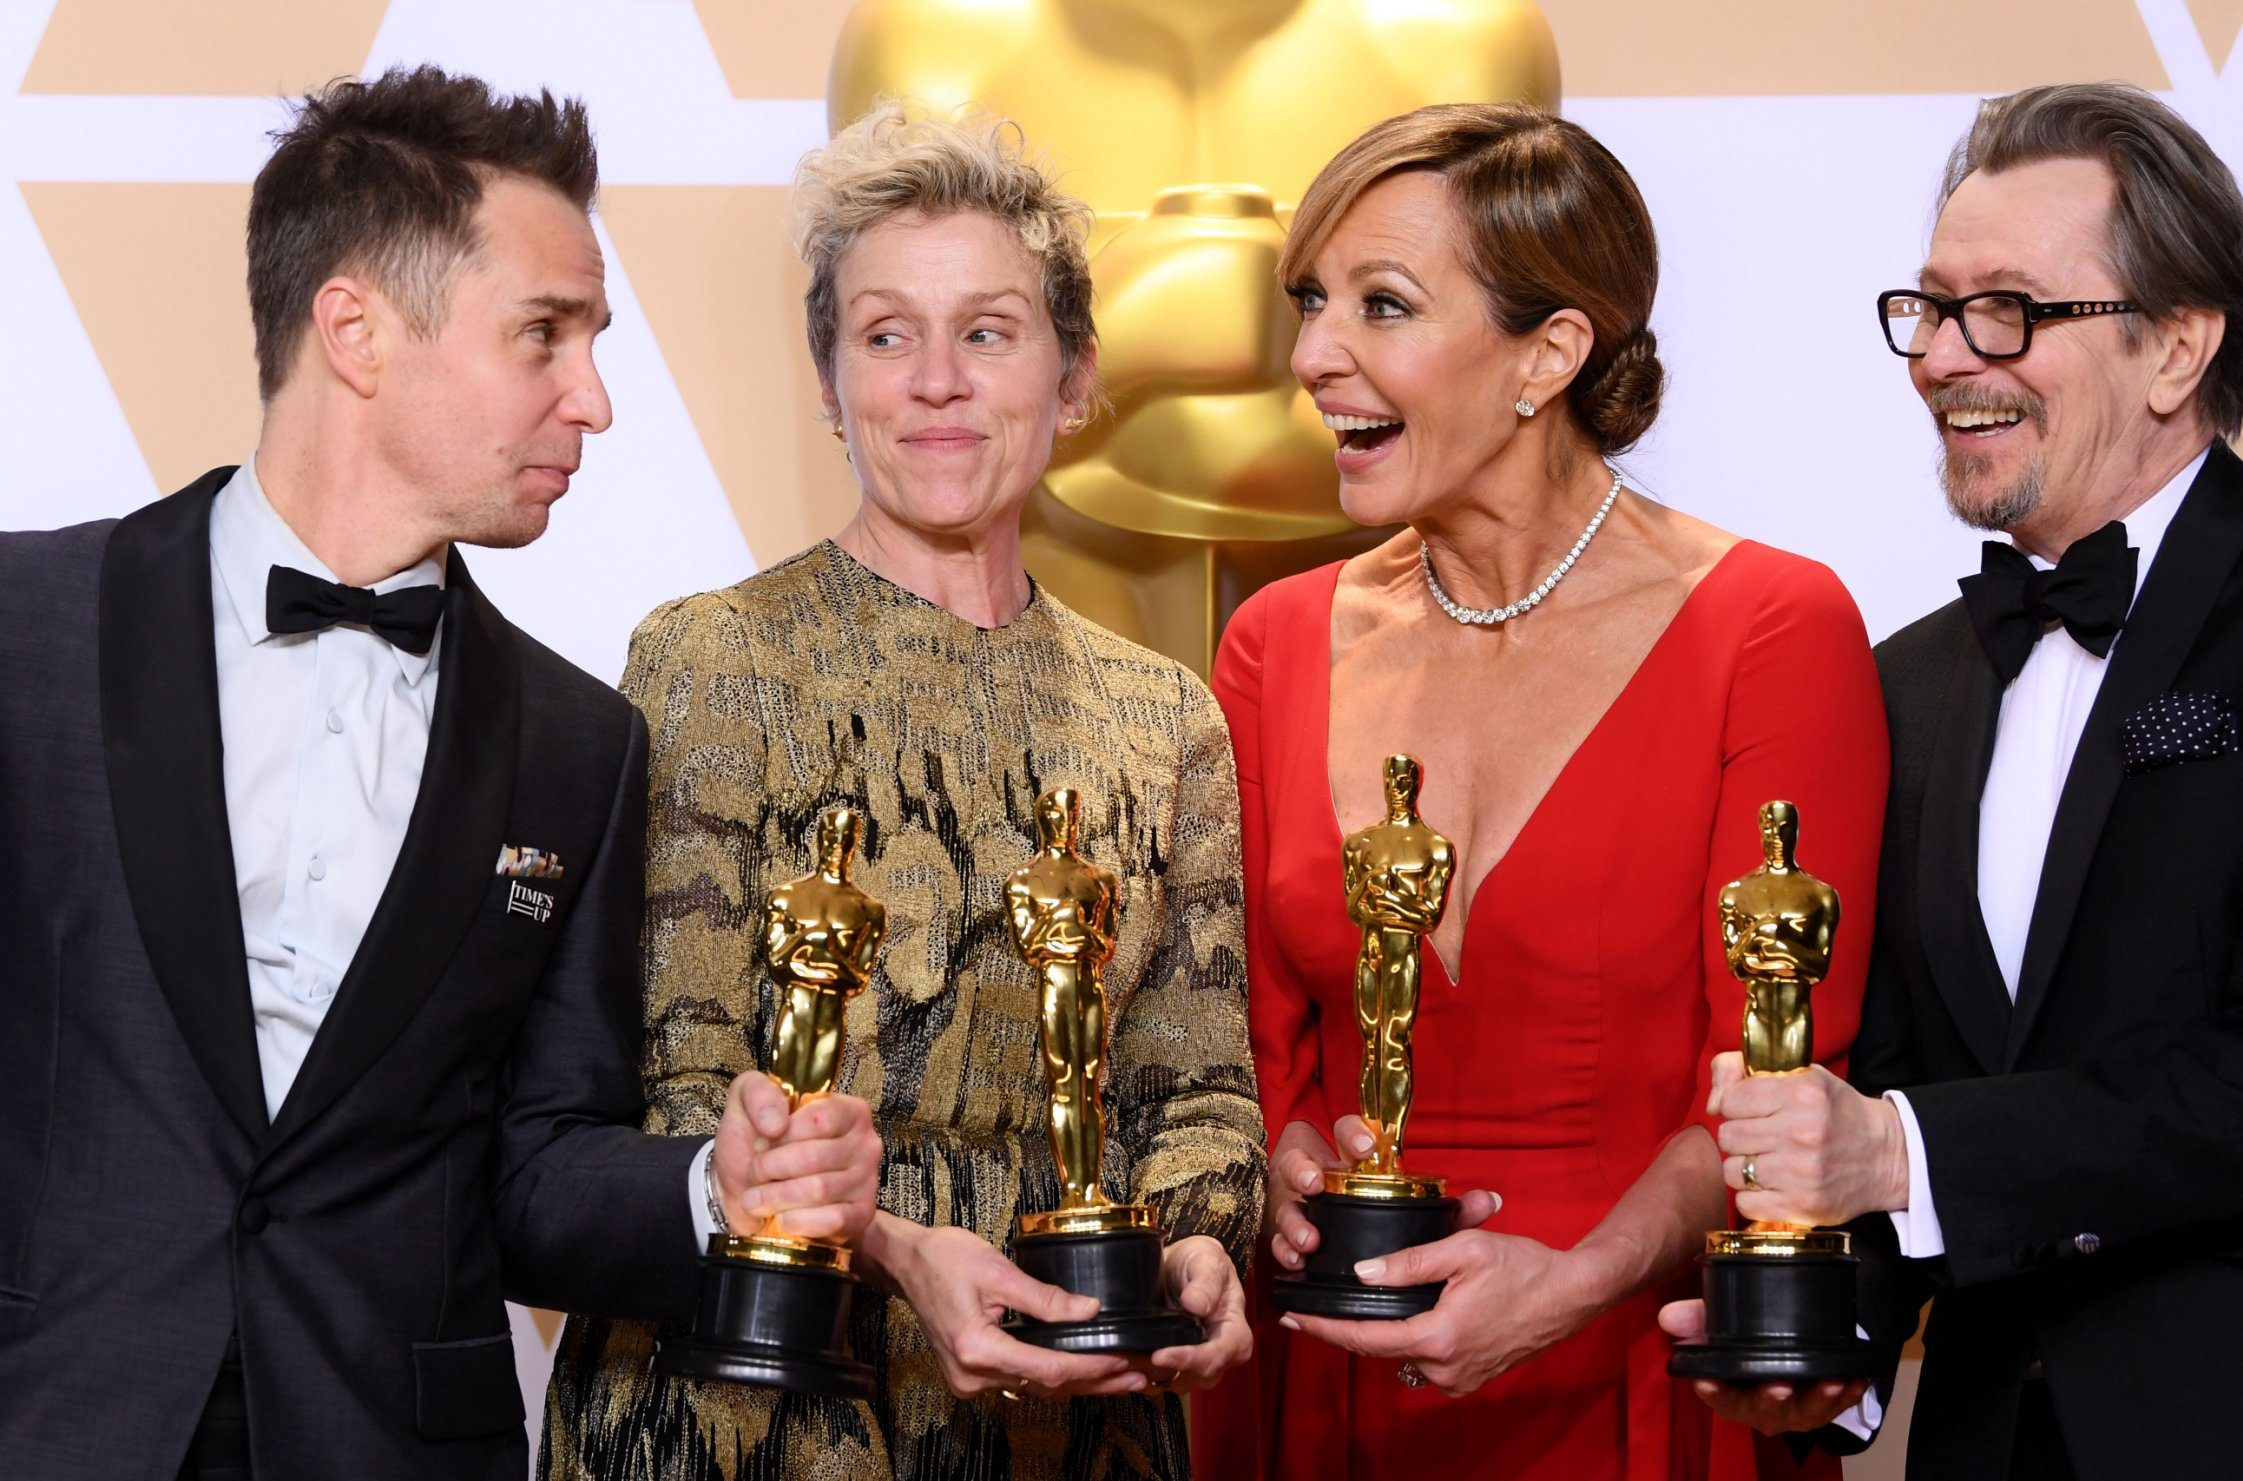 Frances McDormand's Oscar was stolen not lost, and thief has been arrested for grand theft